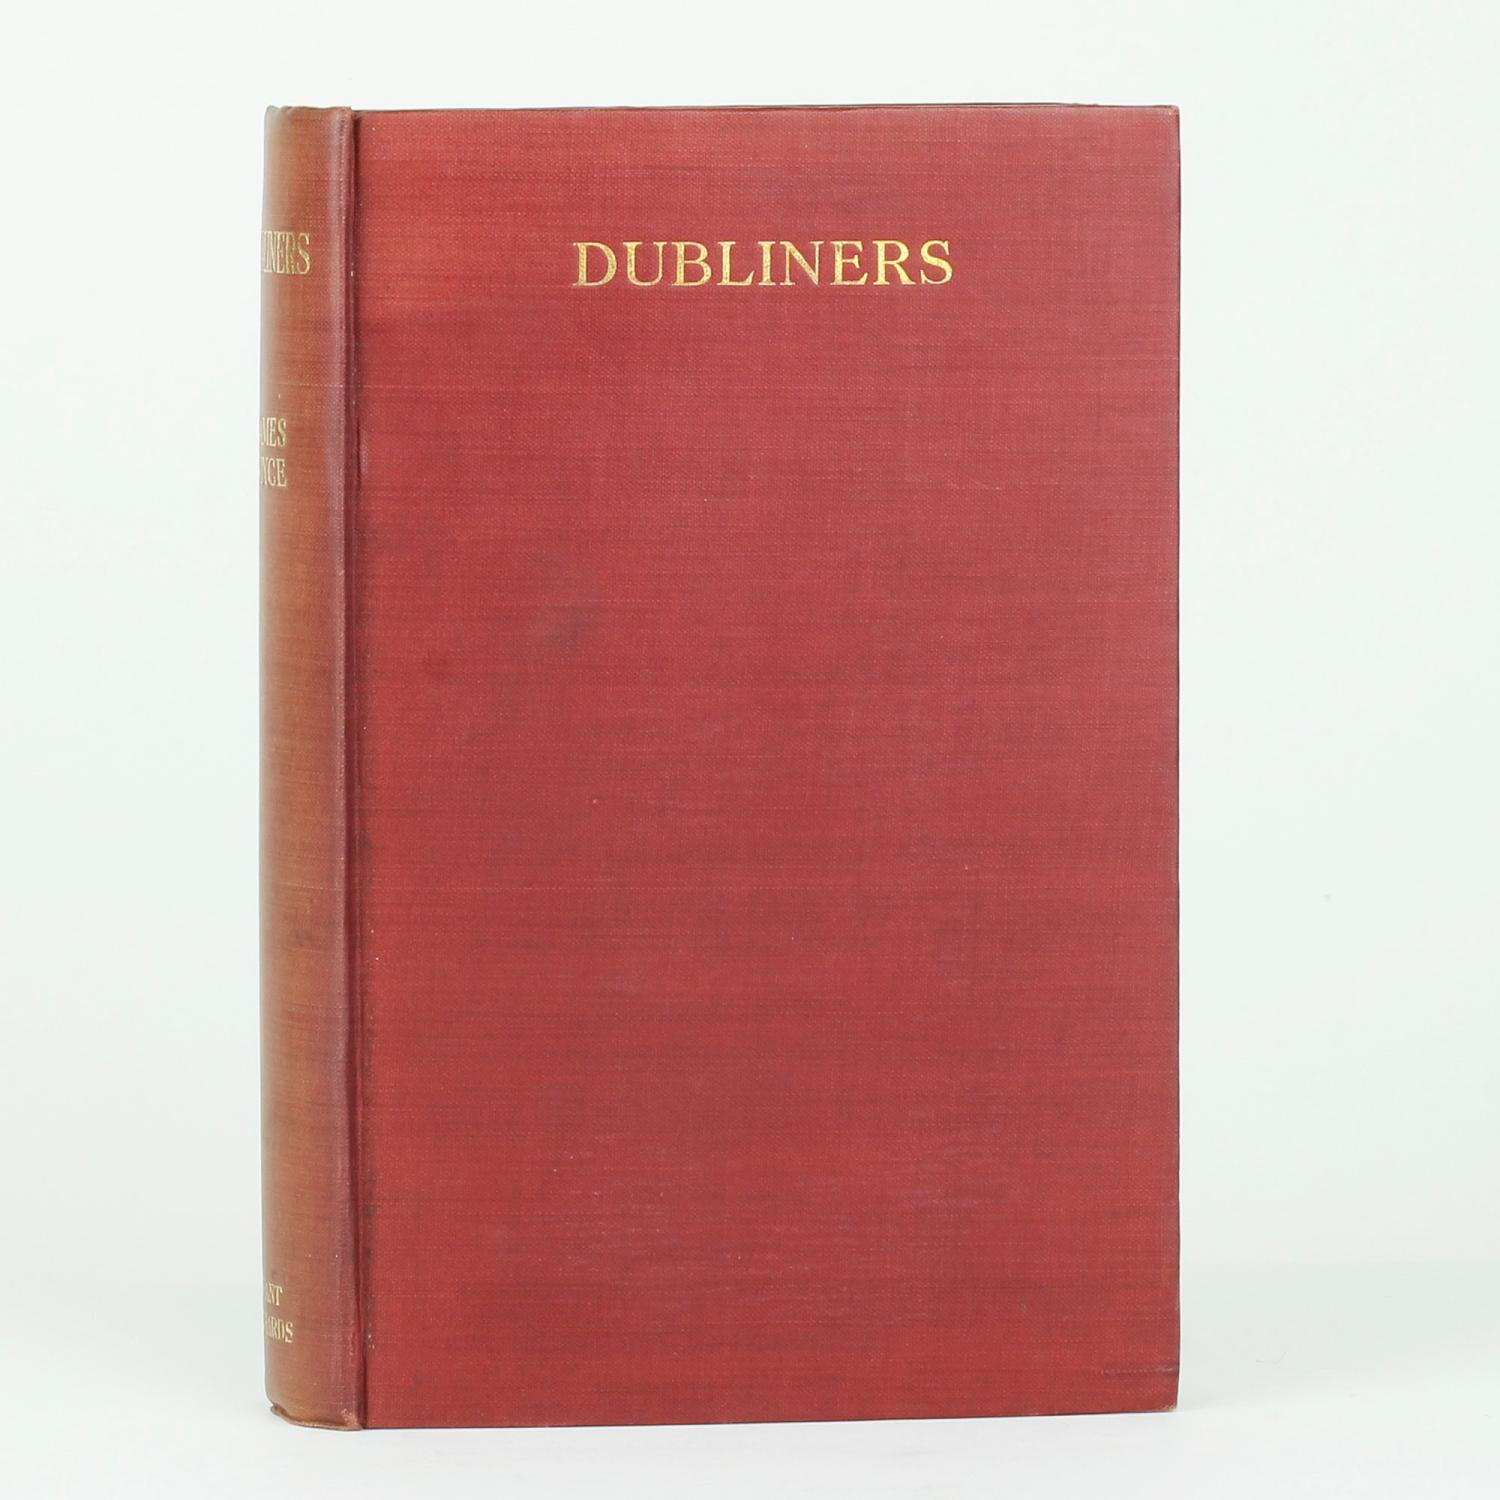 james joyce dubliners Sarah dillon recounts james joyce's epic struggle to publish his first book, dubliners.